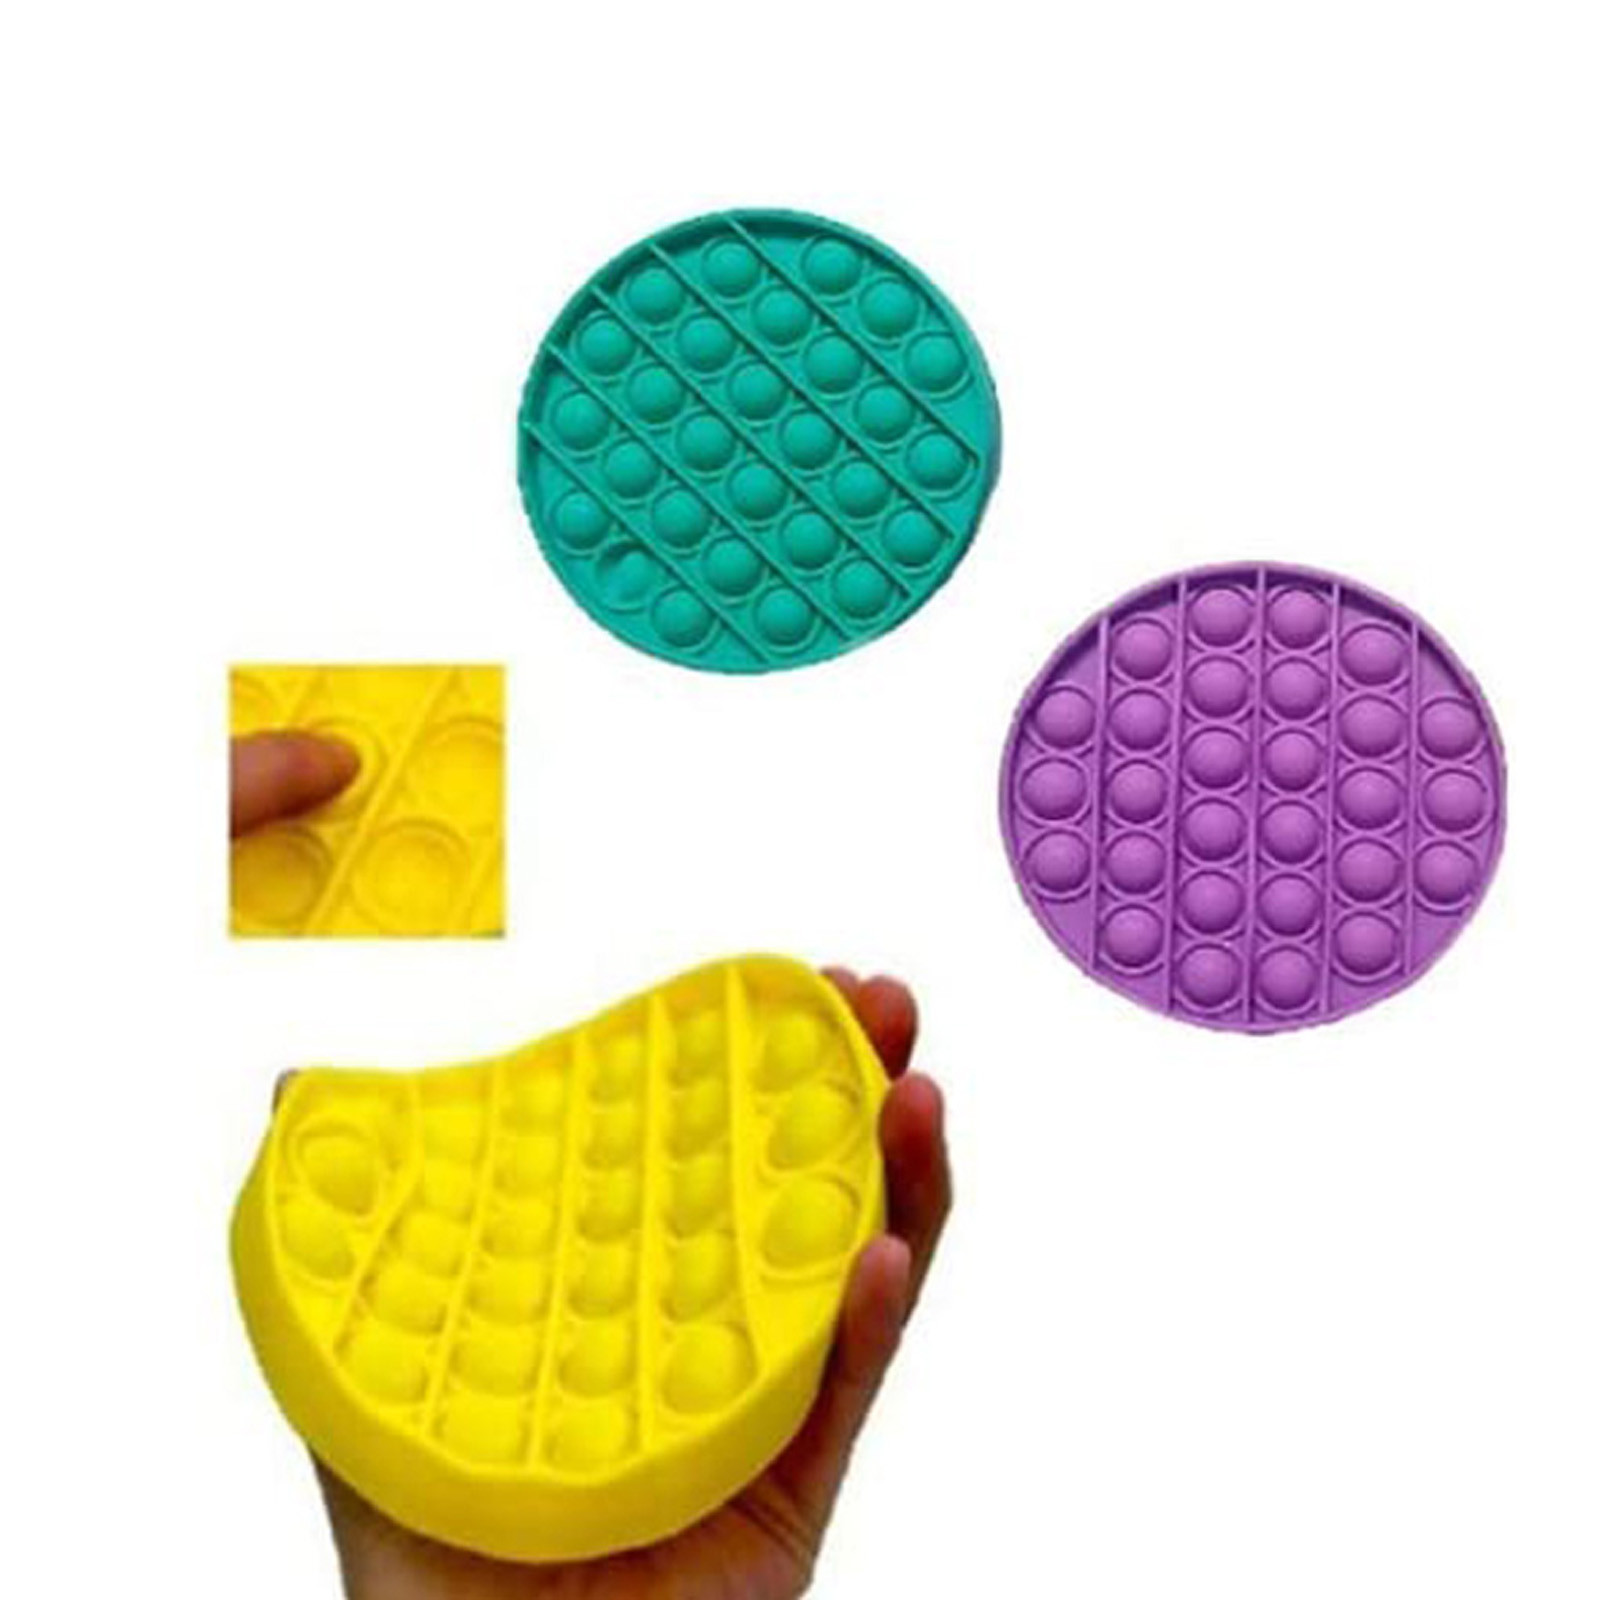 Figet-Toys Sensory-Toy Autism Fidget Needs-Stress Children Reliever Adult Hot Special img3